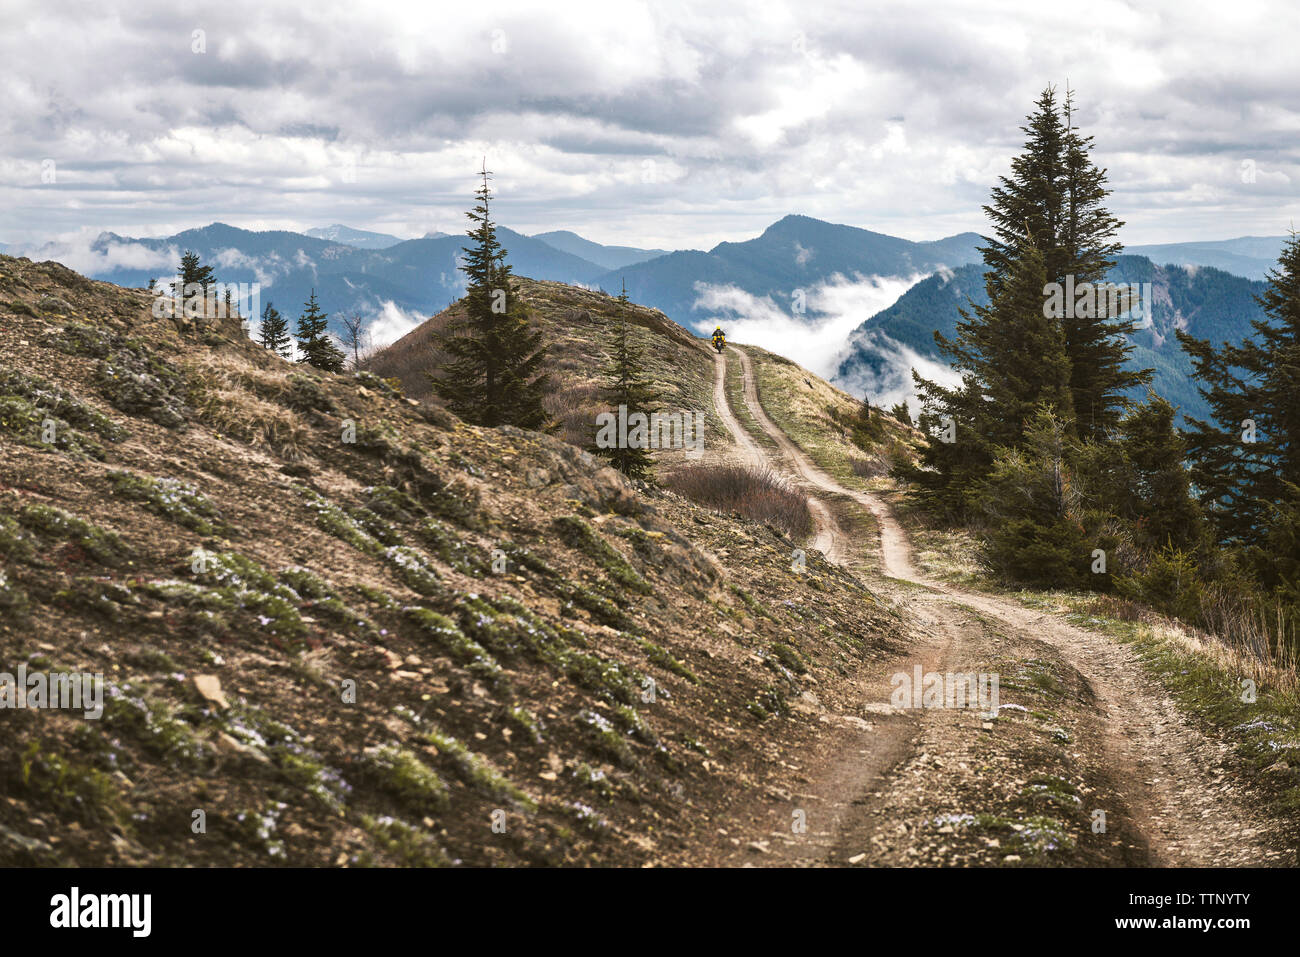 Road at mountains against cloudy sky - Stock Image